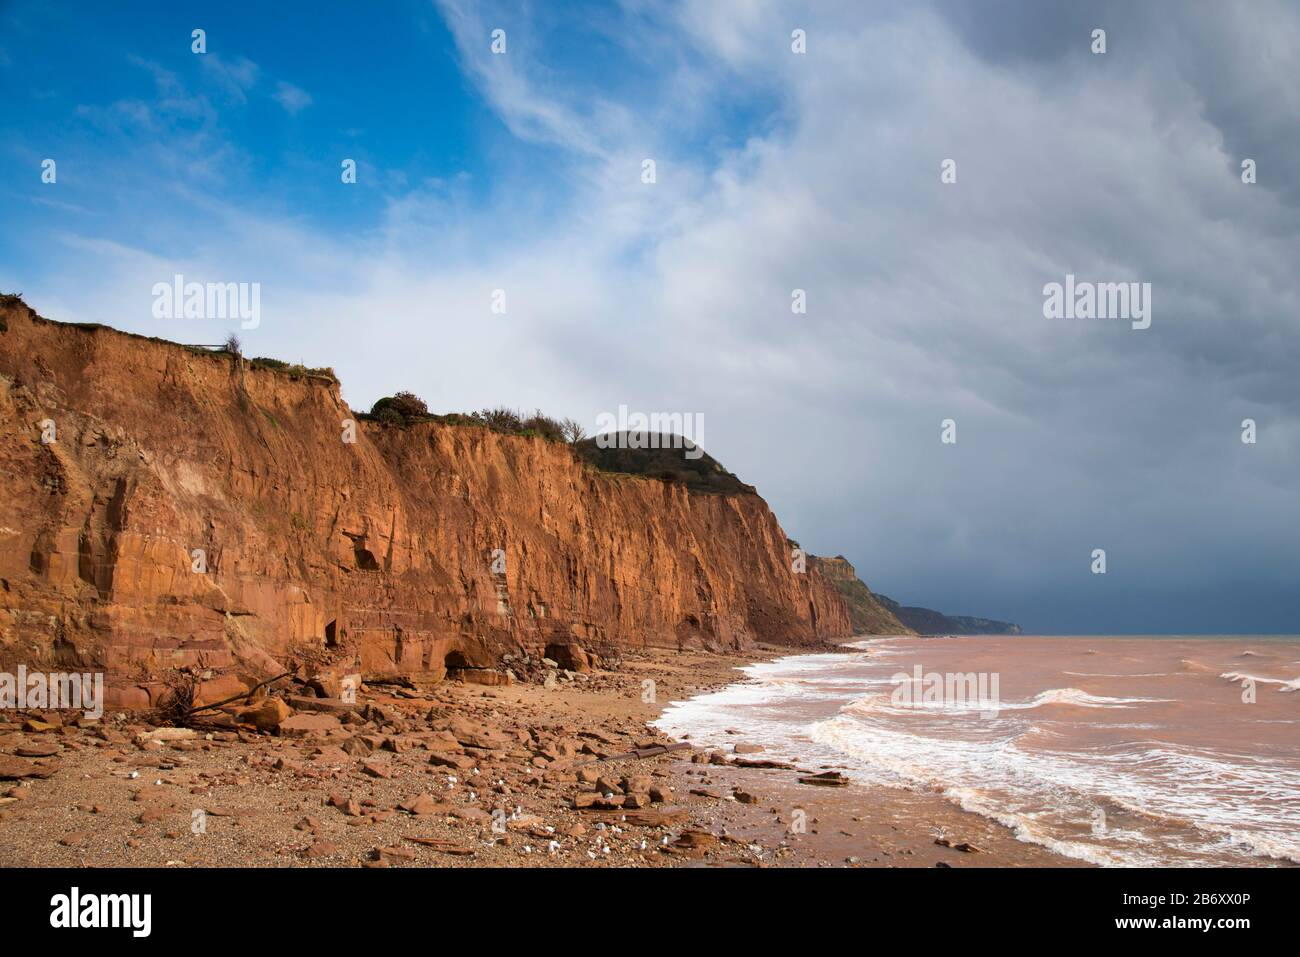 Sidmouth, Devon, UK.  12th March 2020.  UK Weather.  View of the eroding cliffs East of Sidmouth in Devon on a day of warm spring sunshine and occasional showers where regular landslips are occurring due to the recent stormy weather.  Picture Credit: Graham Hunt/Alamy Live News Stock Photo